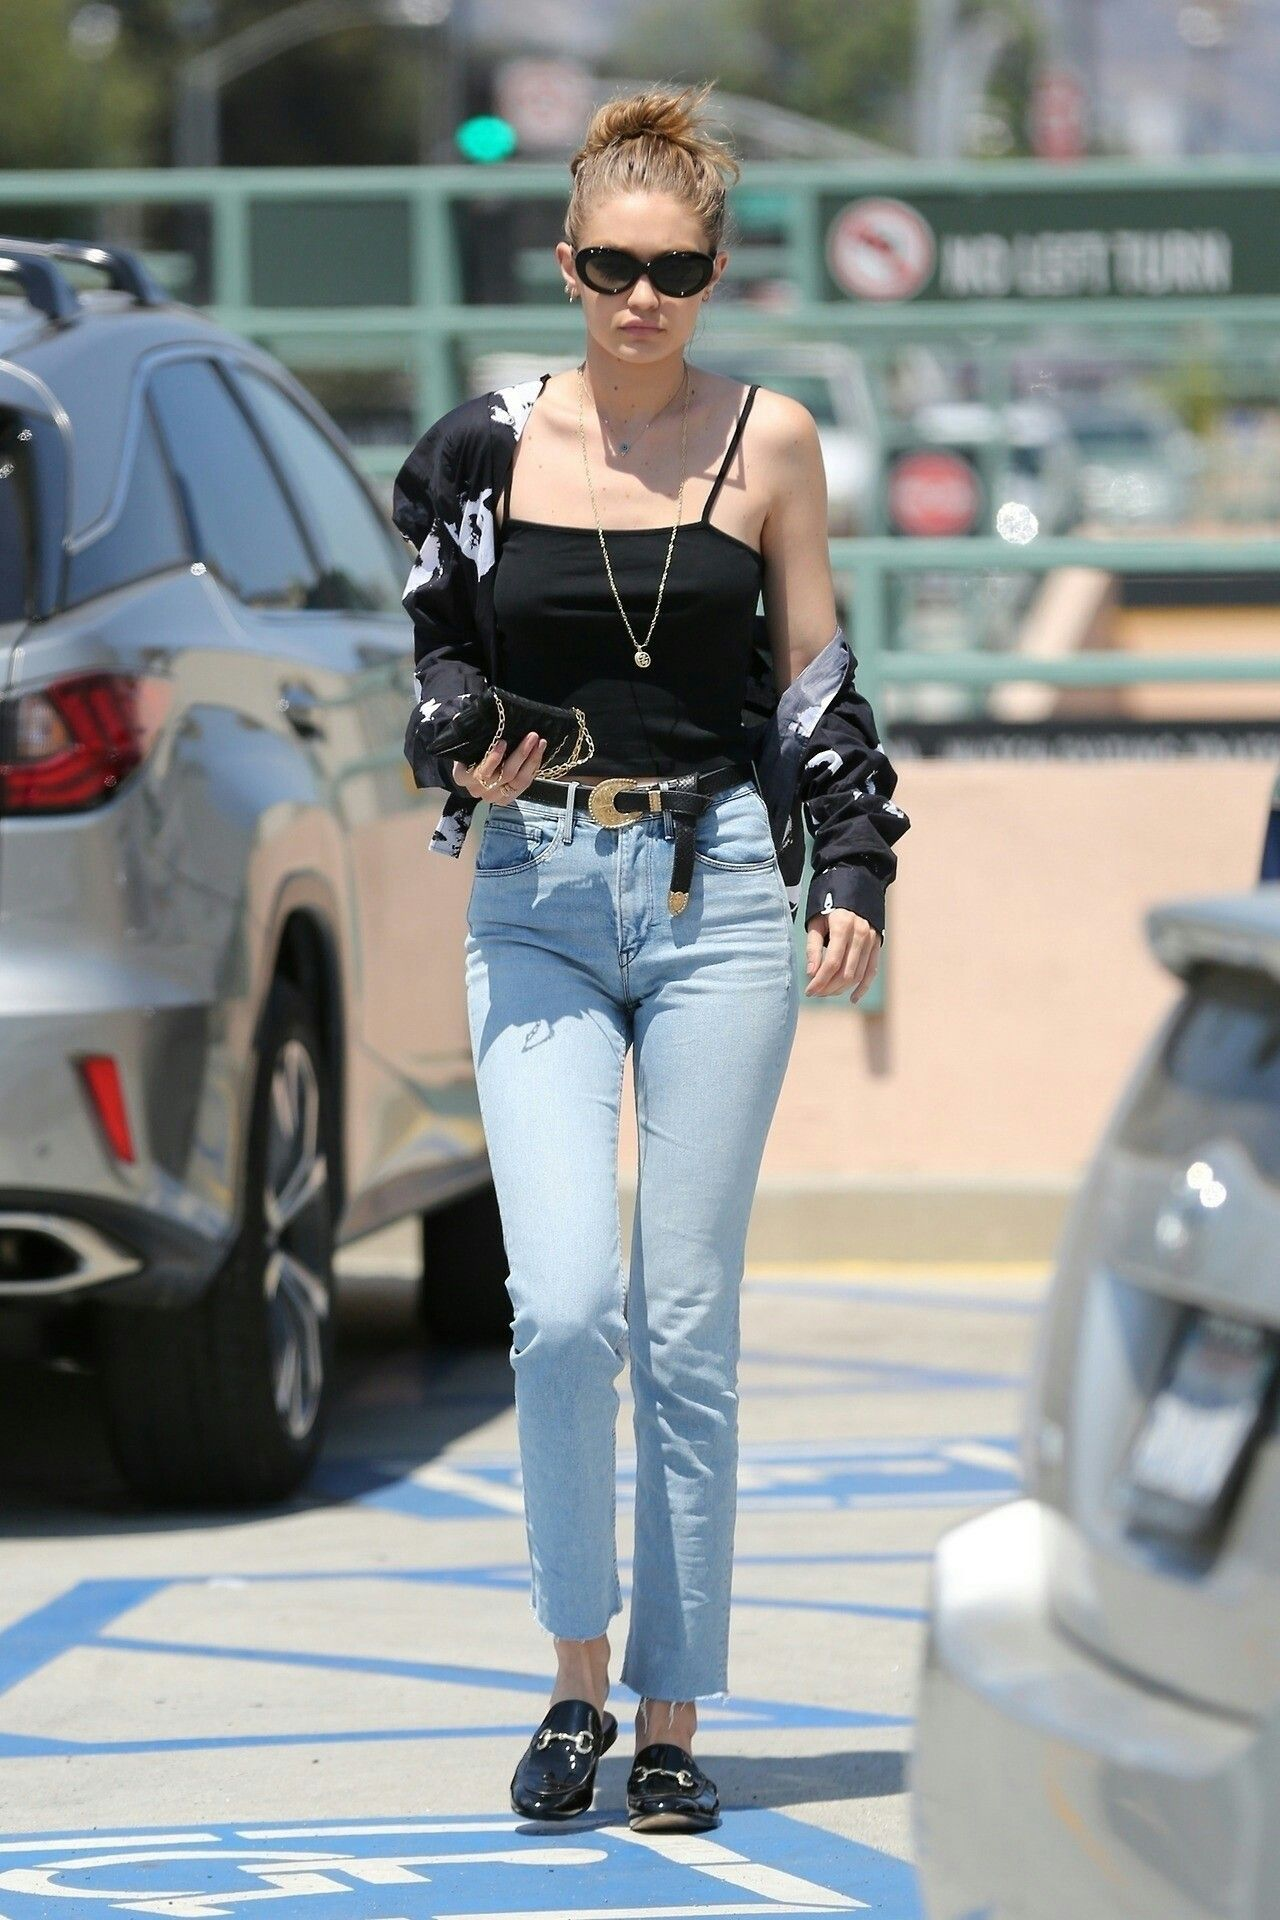 Pin By S S On Fashion Outfits Fashion Mom Jeans Fashion Outfits